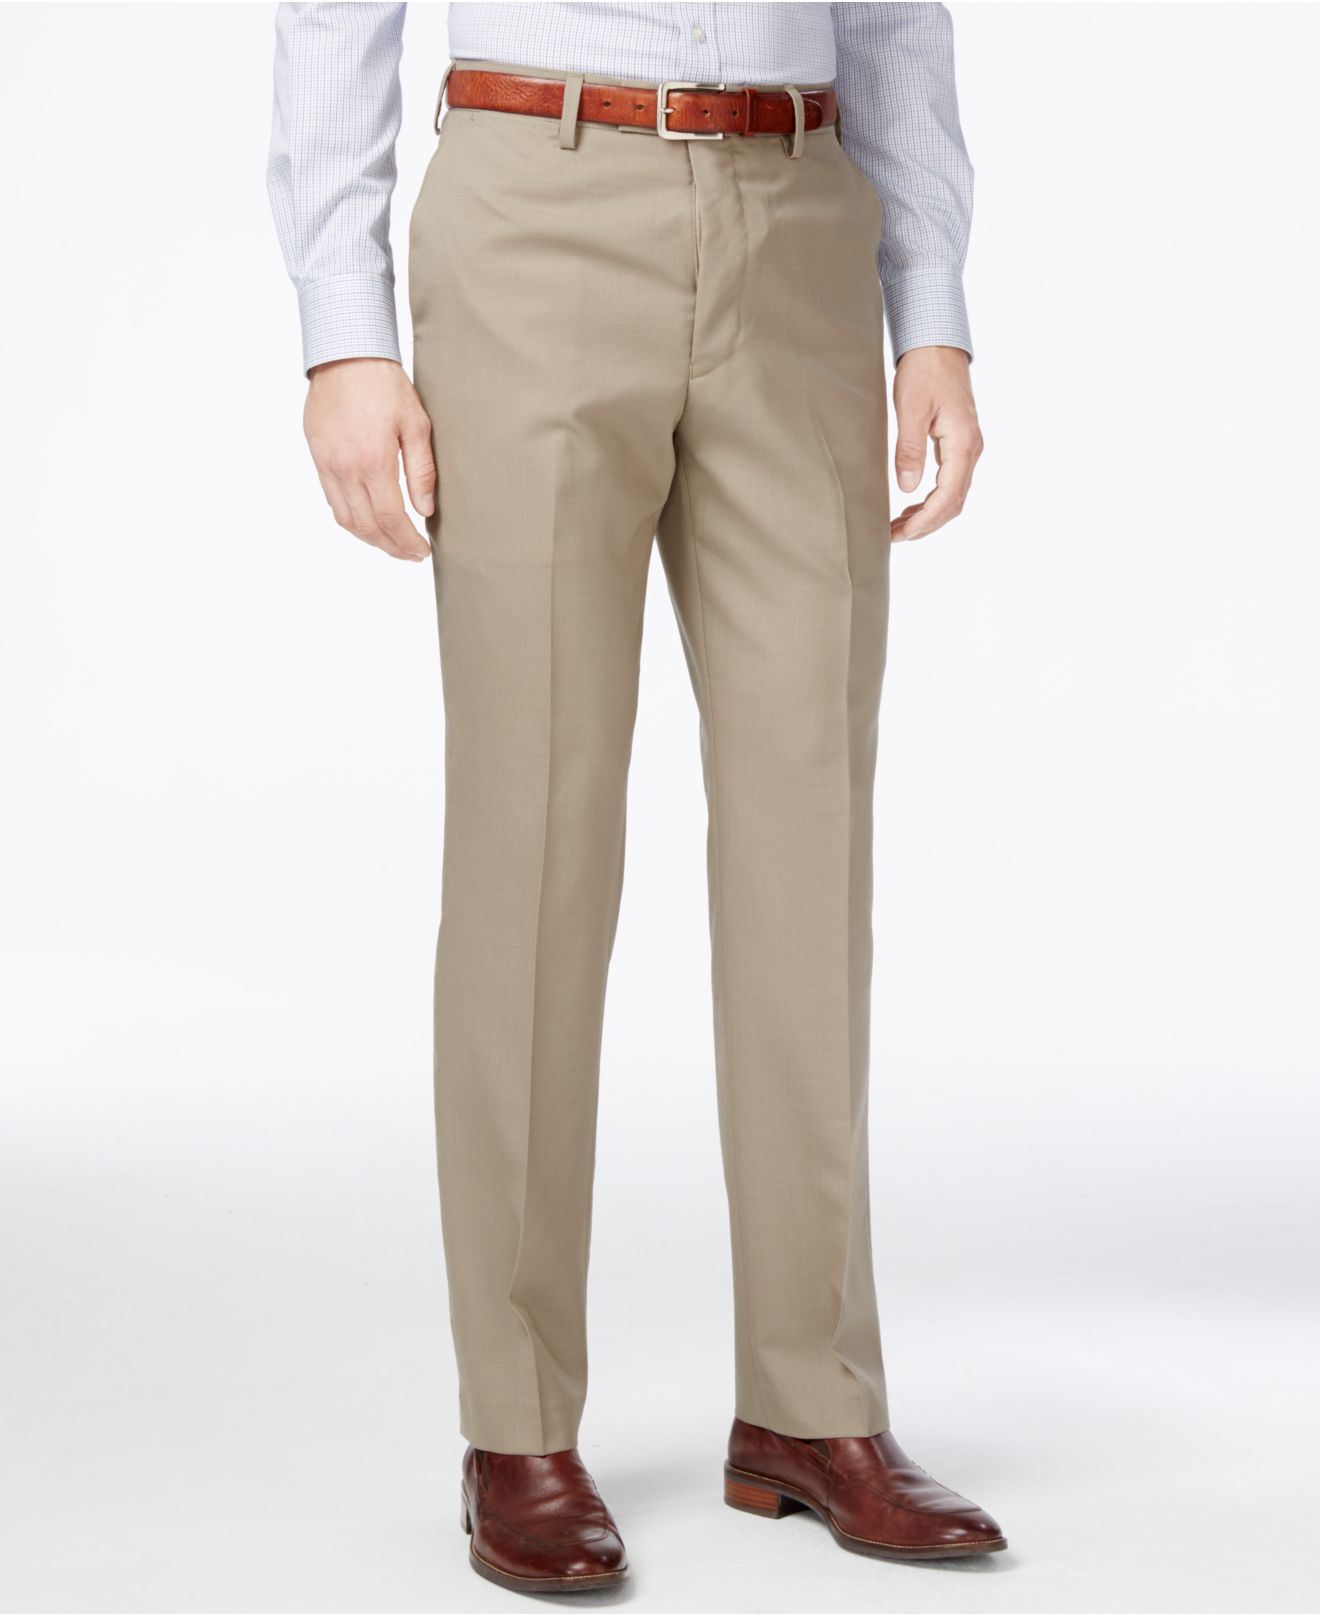 The slim fit suits with slim fit dress pants works best for the average body, while a classic fit suit is better for broader body types. Skinny suits are great accents for taller and slim hereufilbk.gq suit speaks through its color and style.